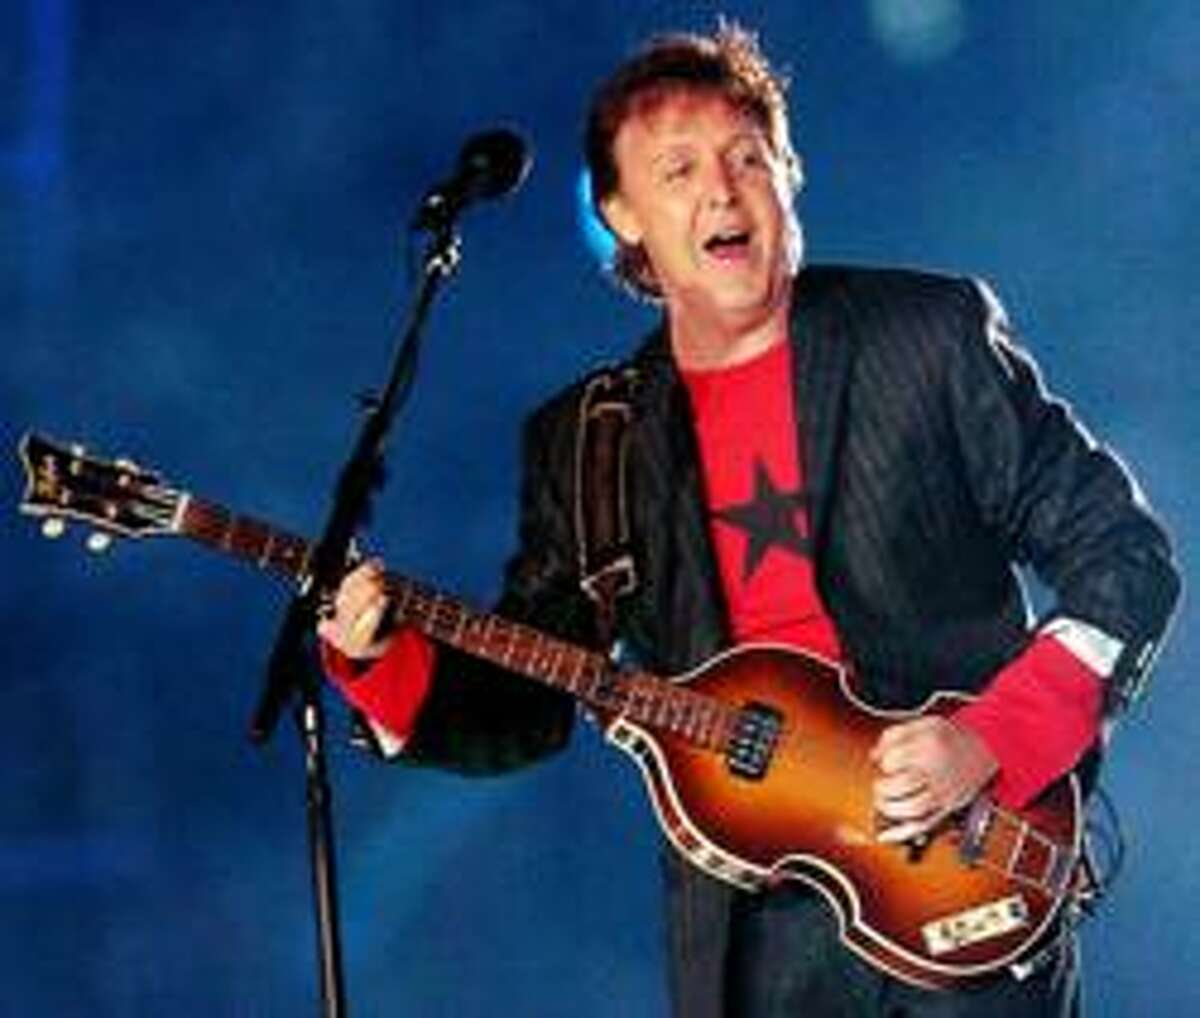 Paul's show The aesthetic of the album was predominantly McCartney's.